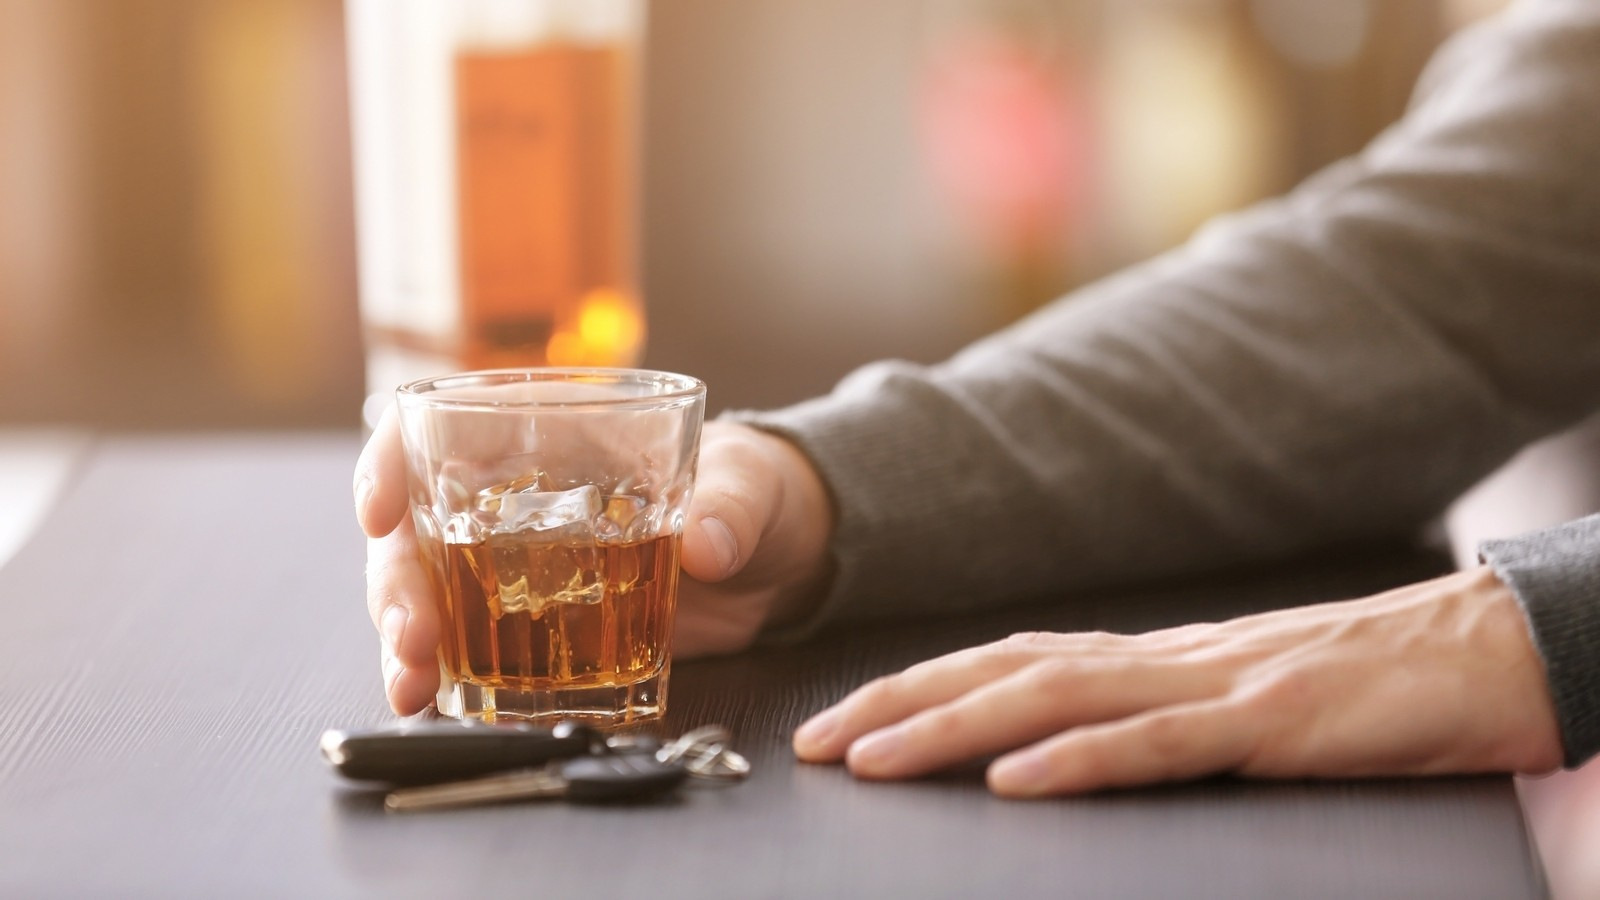 Man sitting in bar with car key and glass of alcoholic beverage, closeup. Don't drink and drive concept